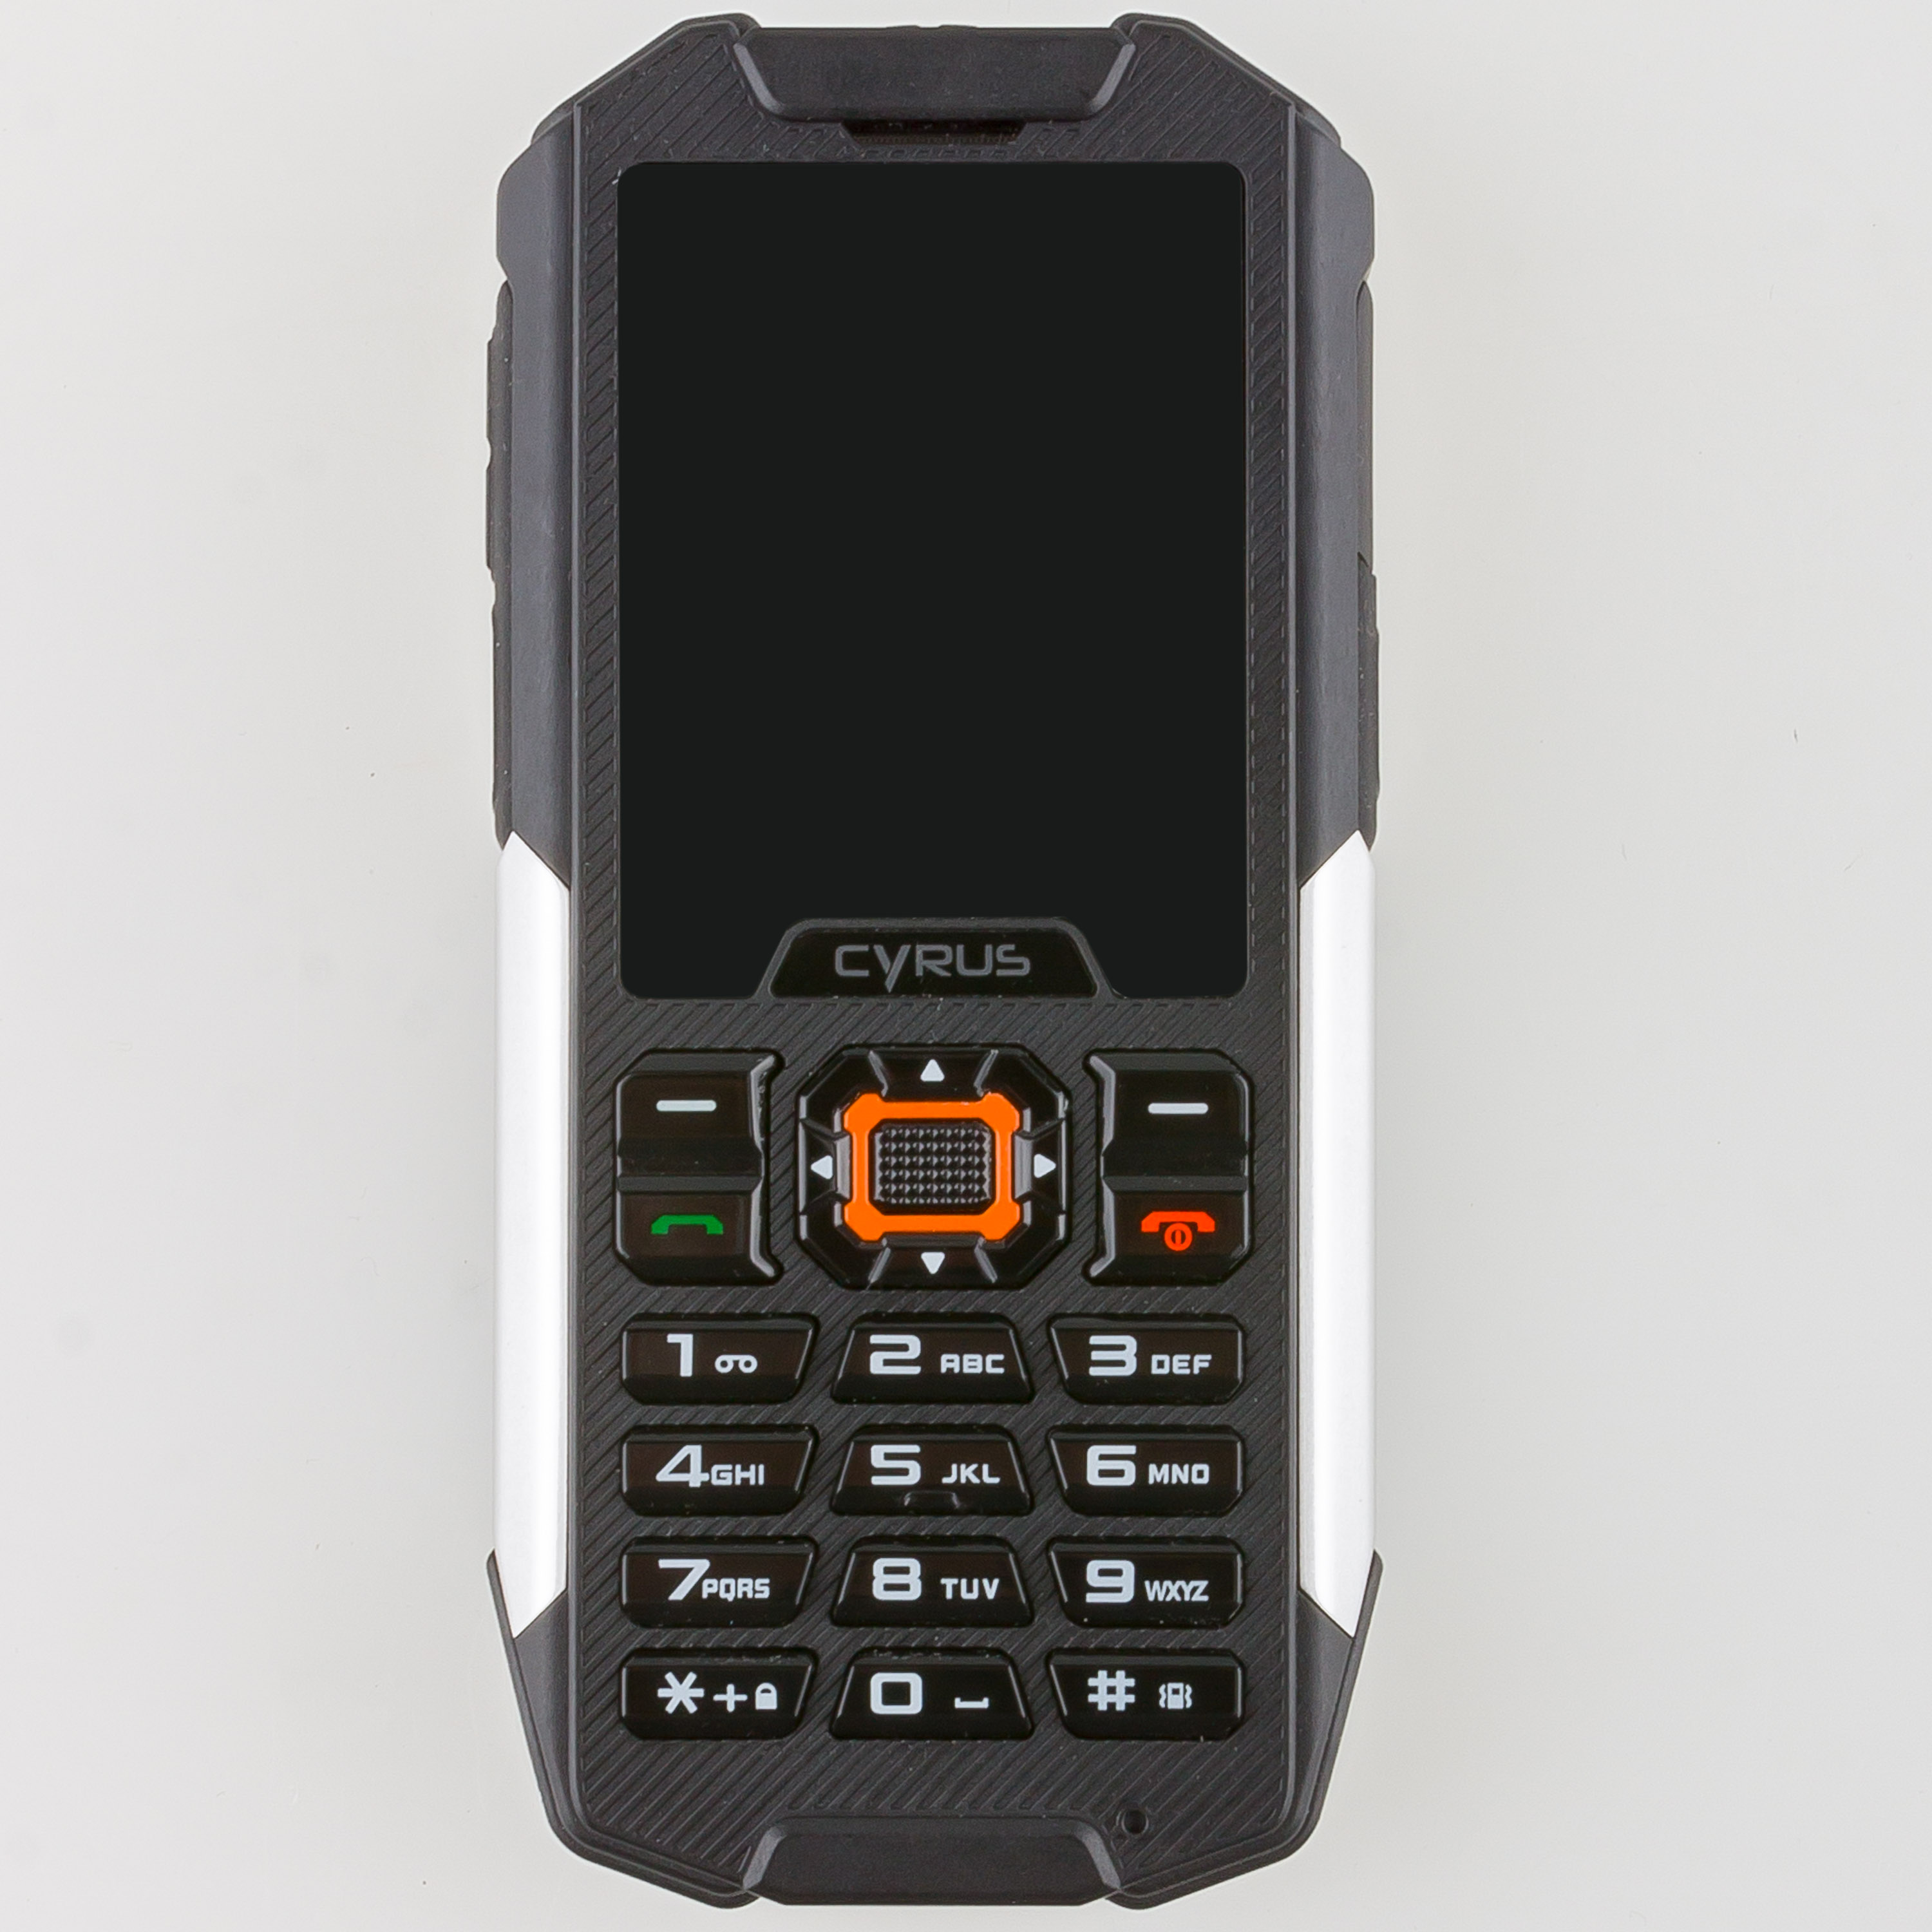 Cyrus Outdoor-Handy CM7